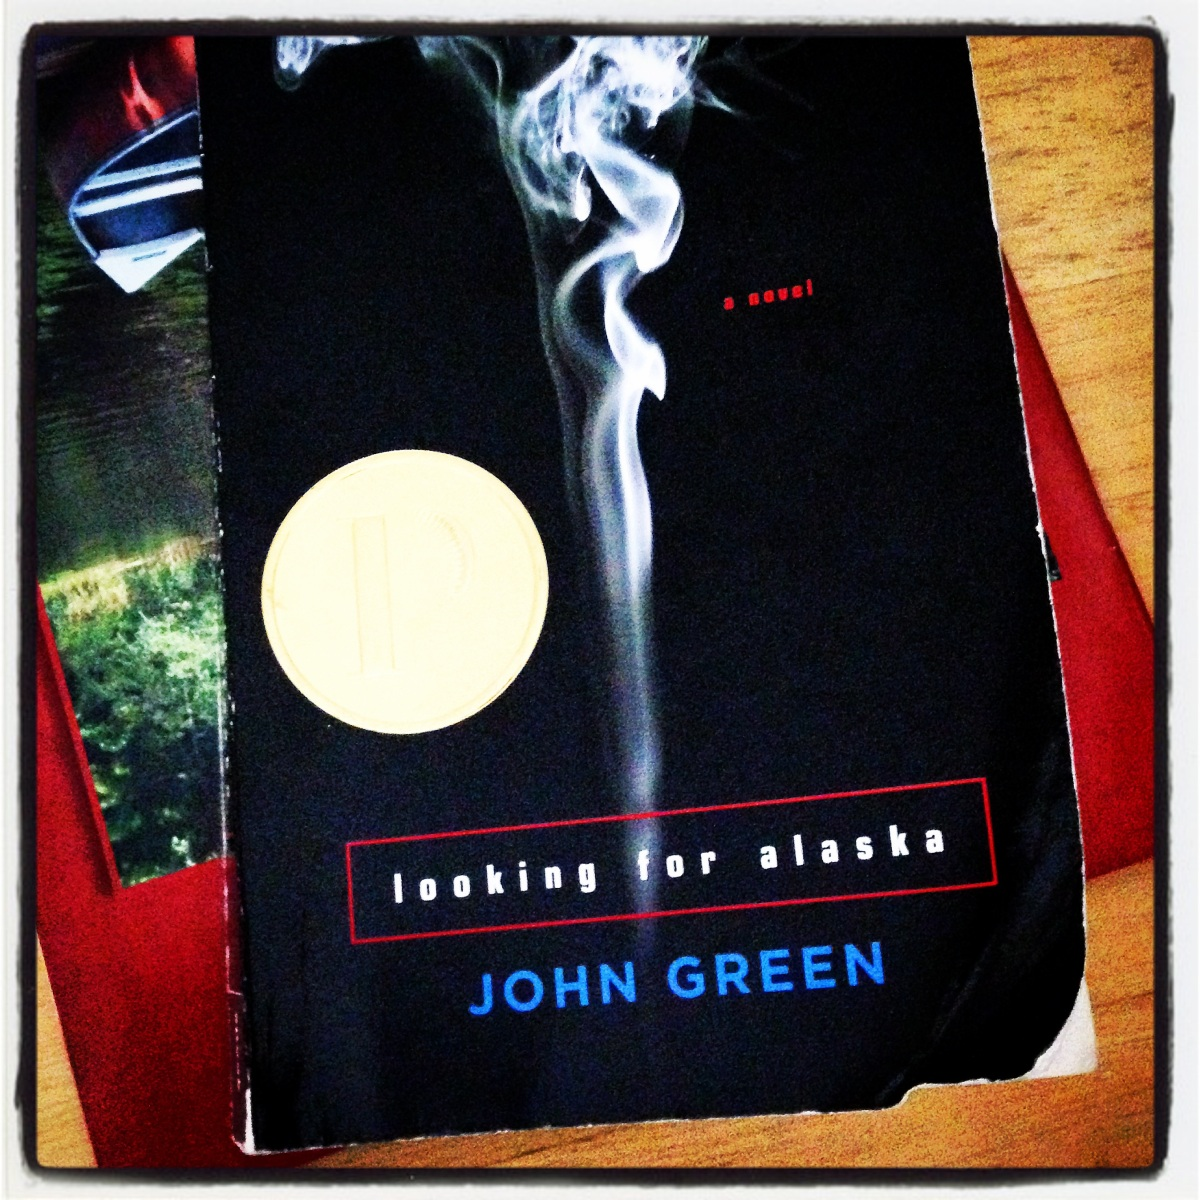 looking for alaska critical review Looking for alaska is the story about miles pudge halter and his first year at culver creek boarding school miles was an introvert at his old high school in florida, obsessed with famous last words after hearing the last words of francois rabelais (i go to seek a great perhaps) he moved to.